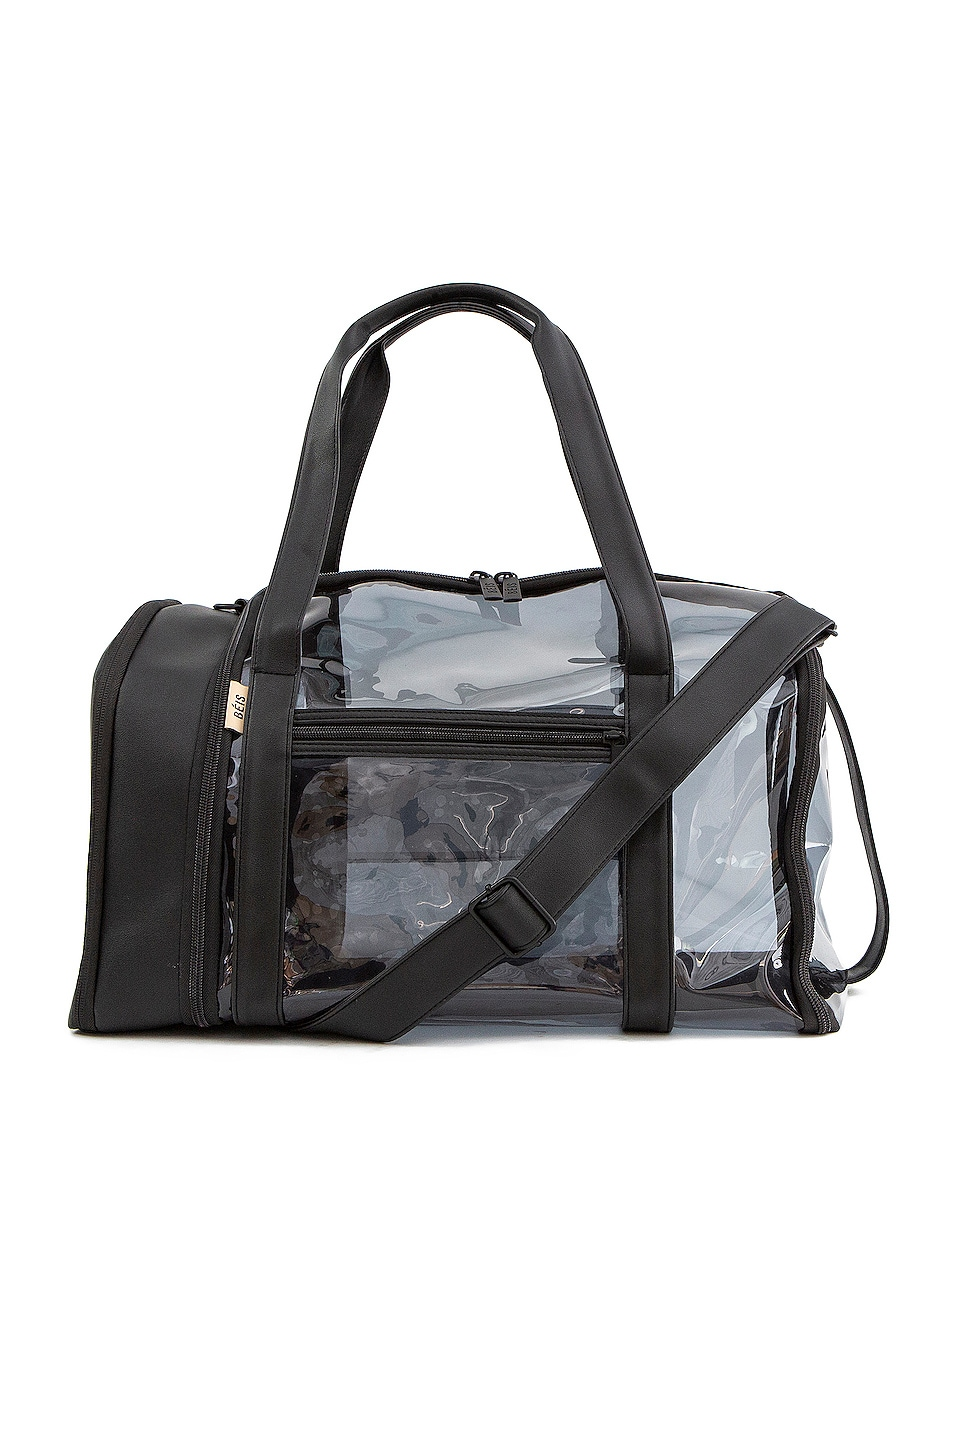 BEIS Gym Duffle Bag in Black